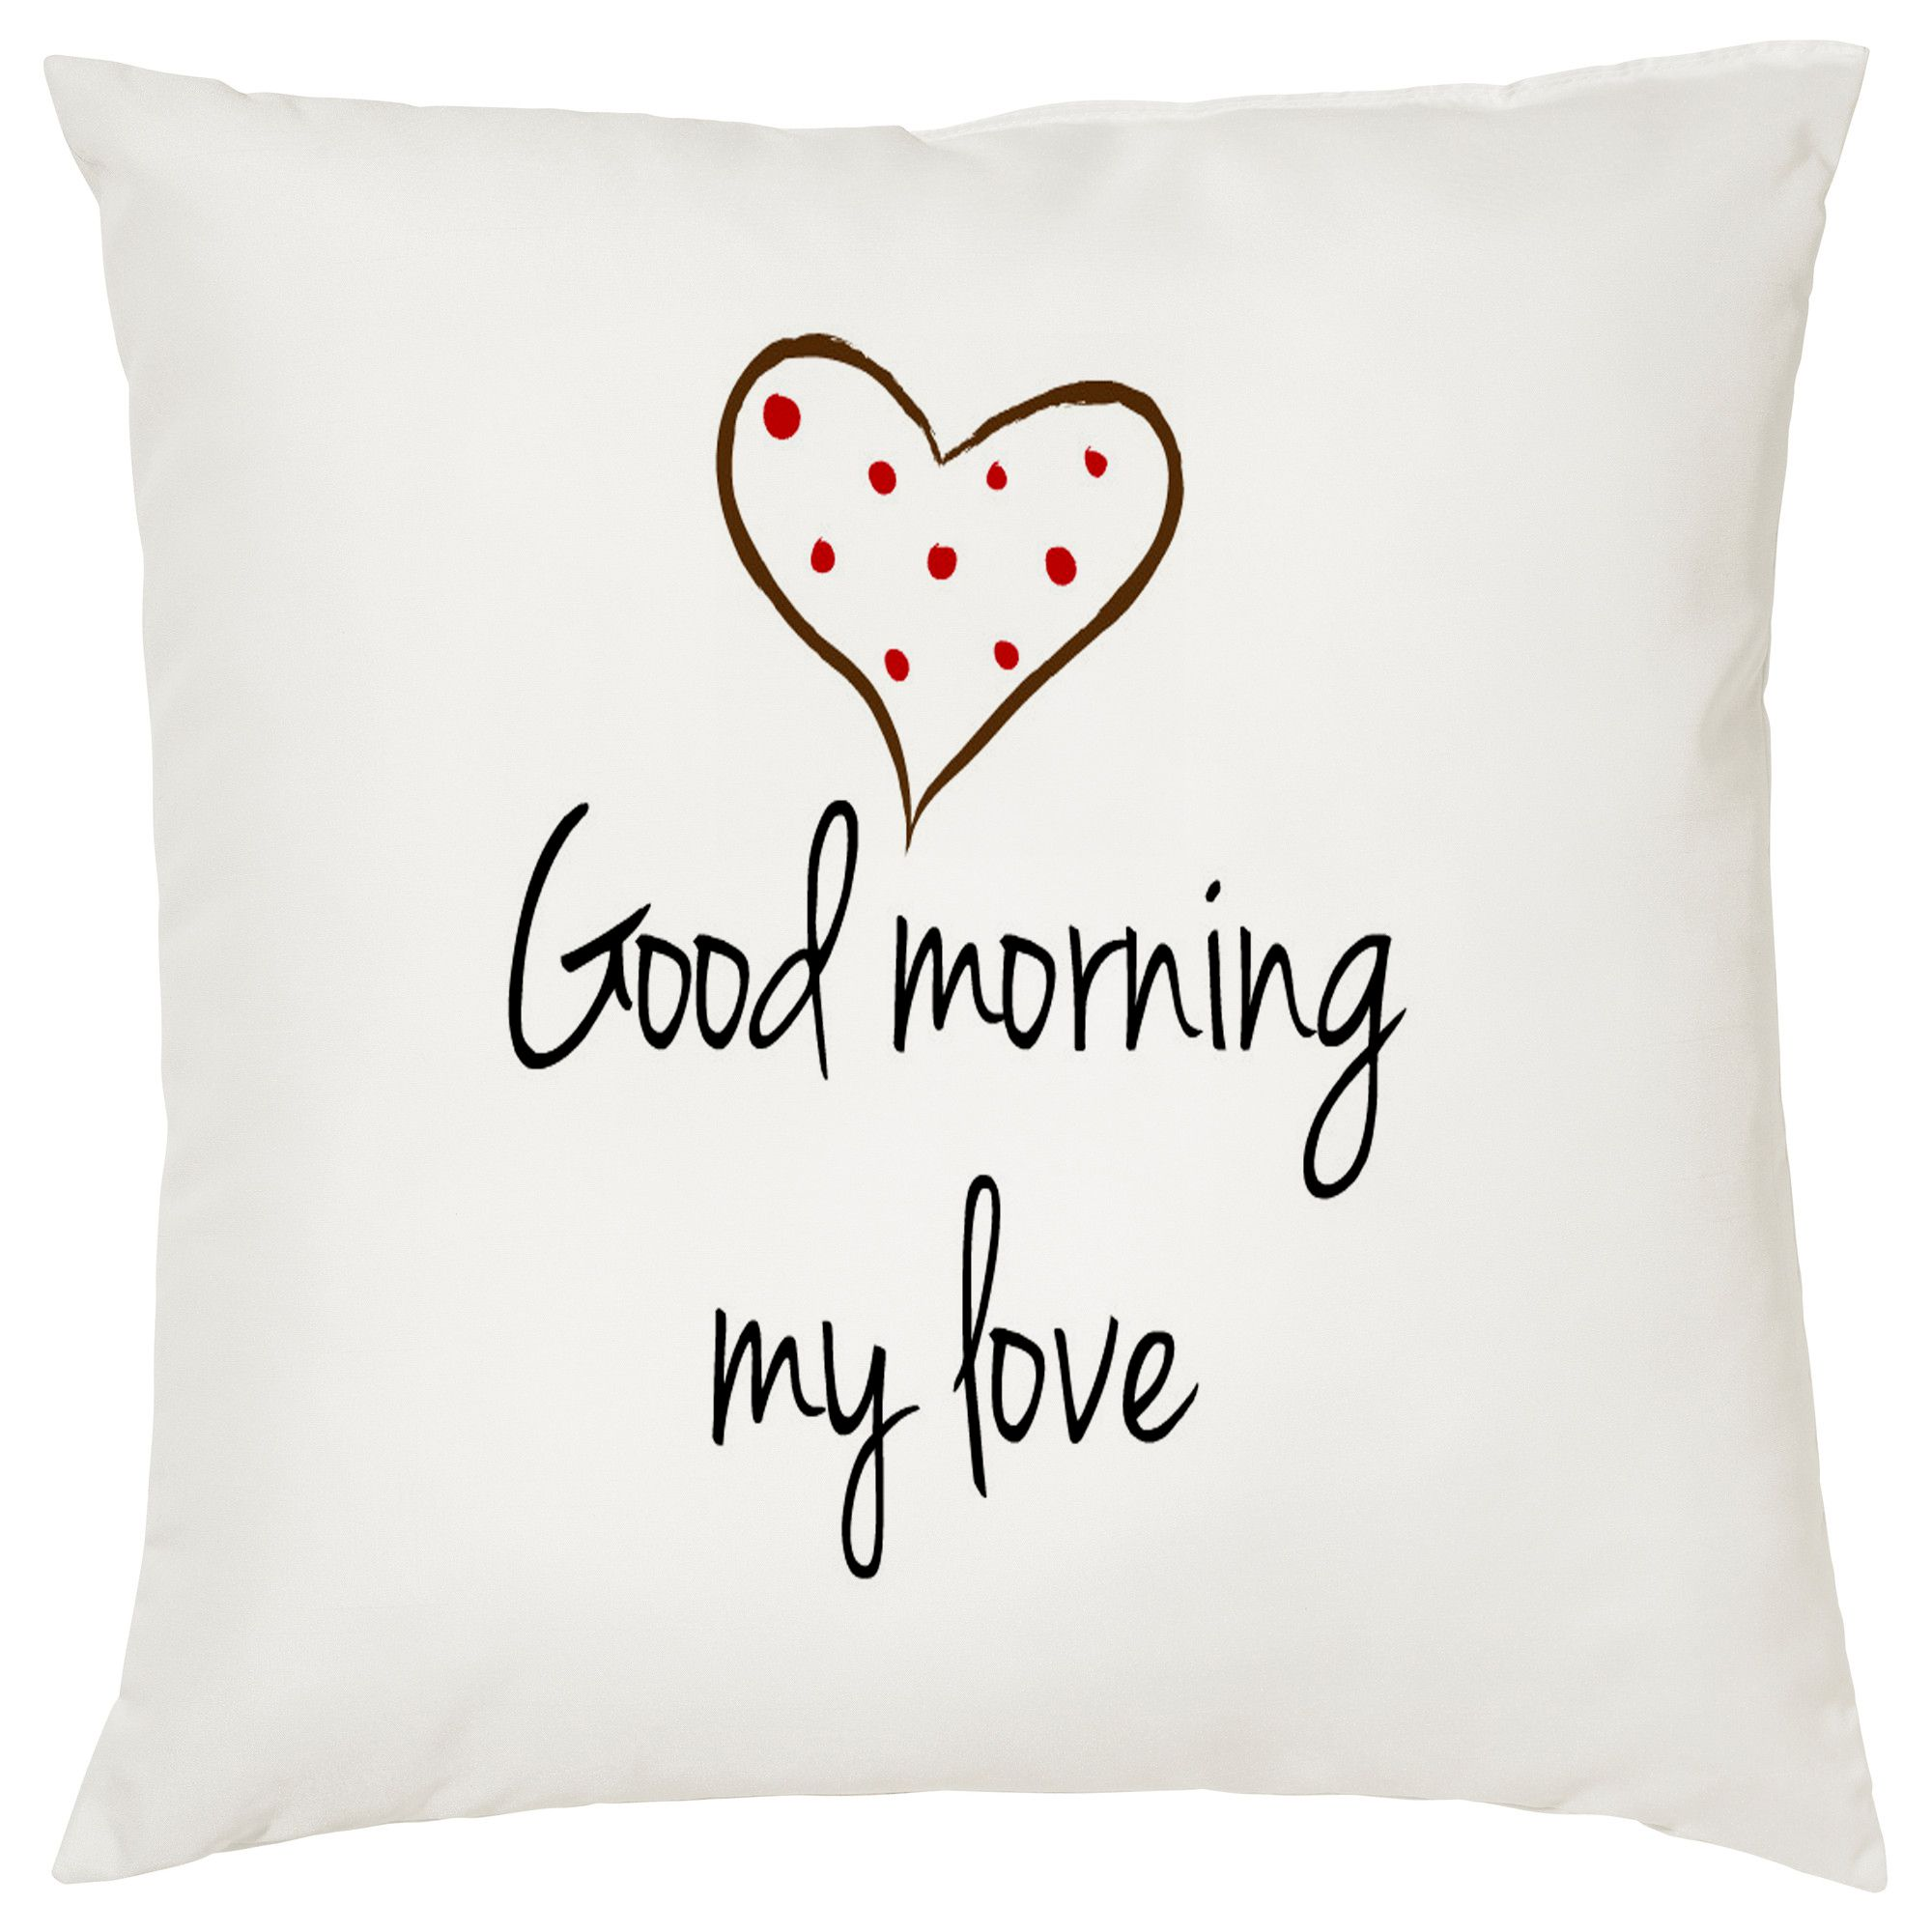 valentines scattercushion gift pillow throw giftforher cushion giftforhim homedecor